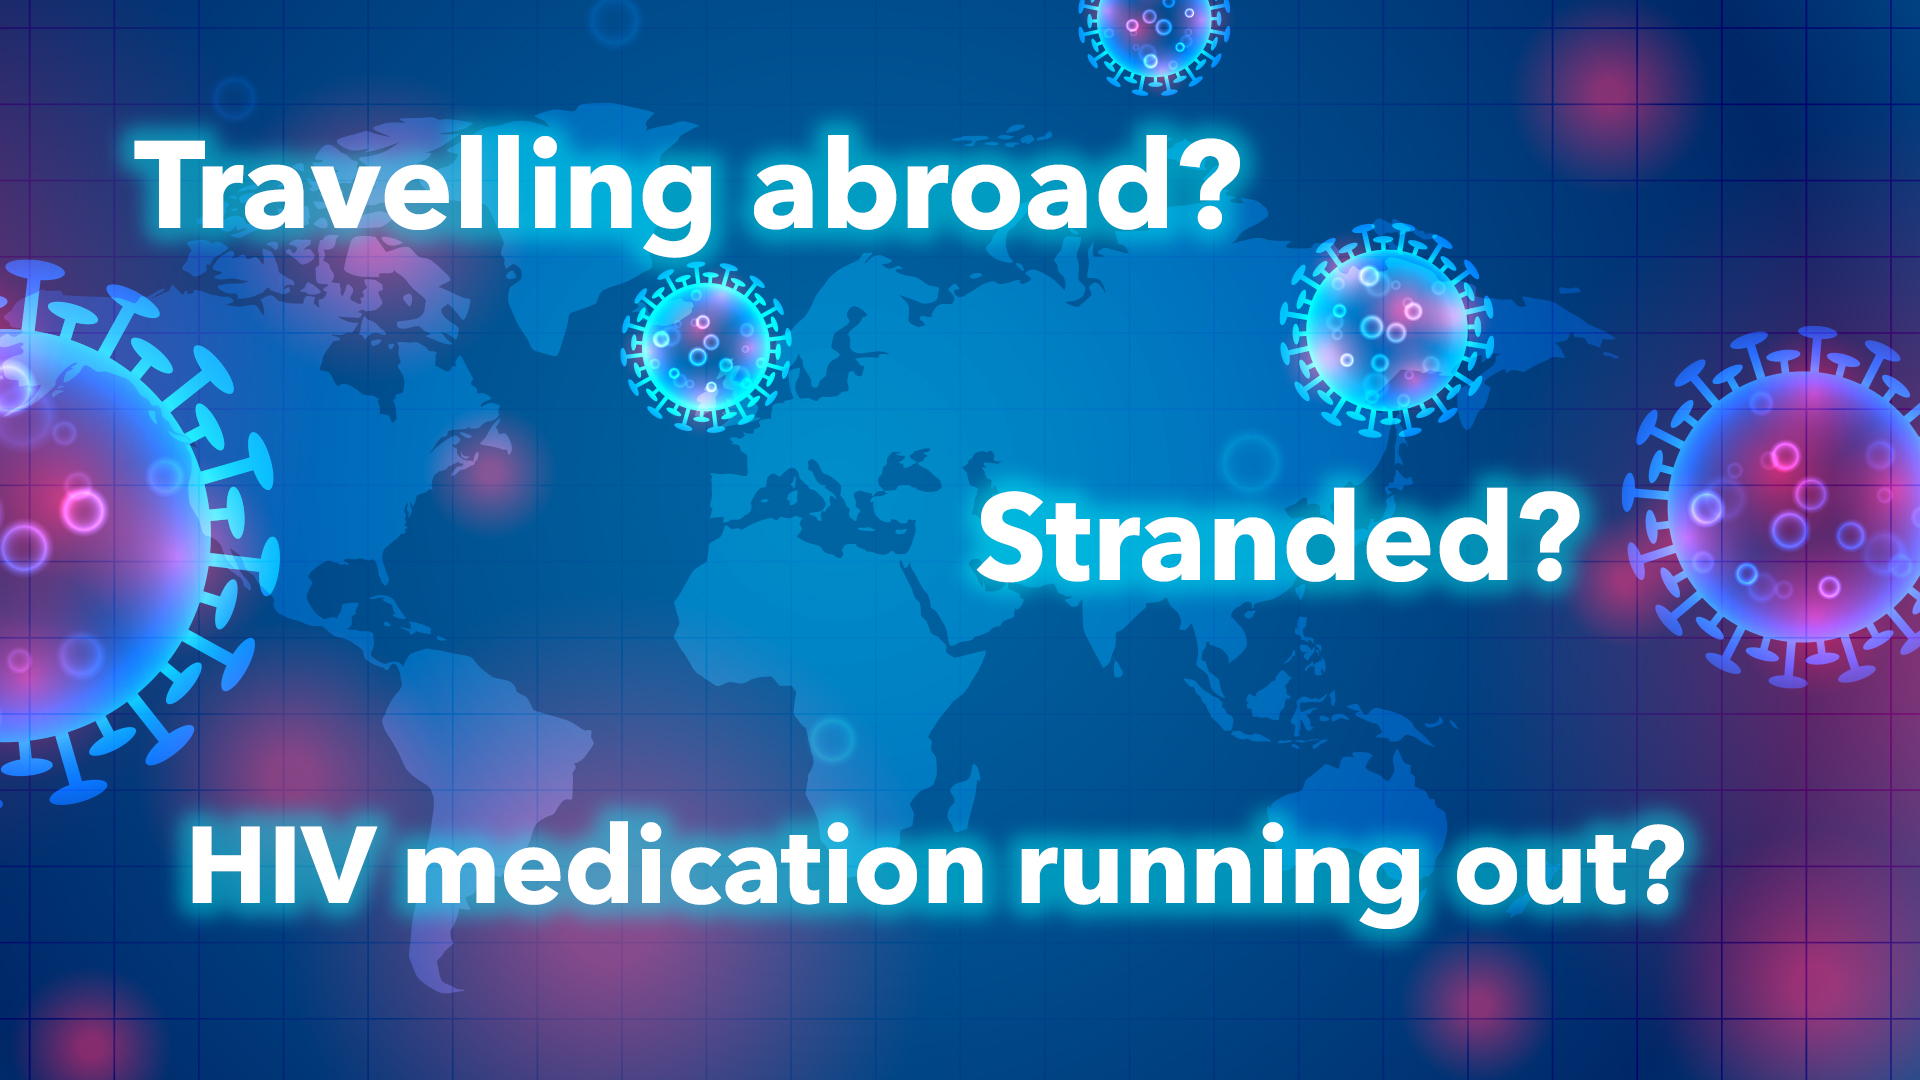 Are you stranded abroad because of coronavirus?  Now running out of HIV medication? We will help you!